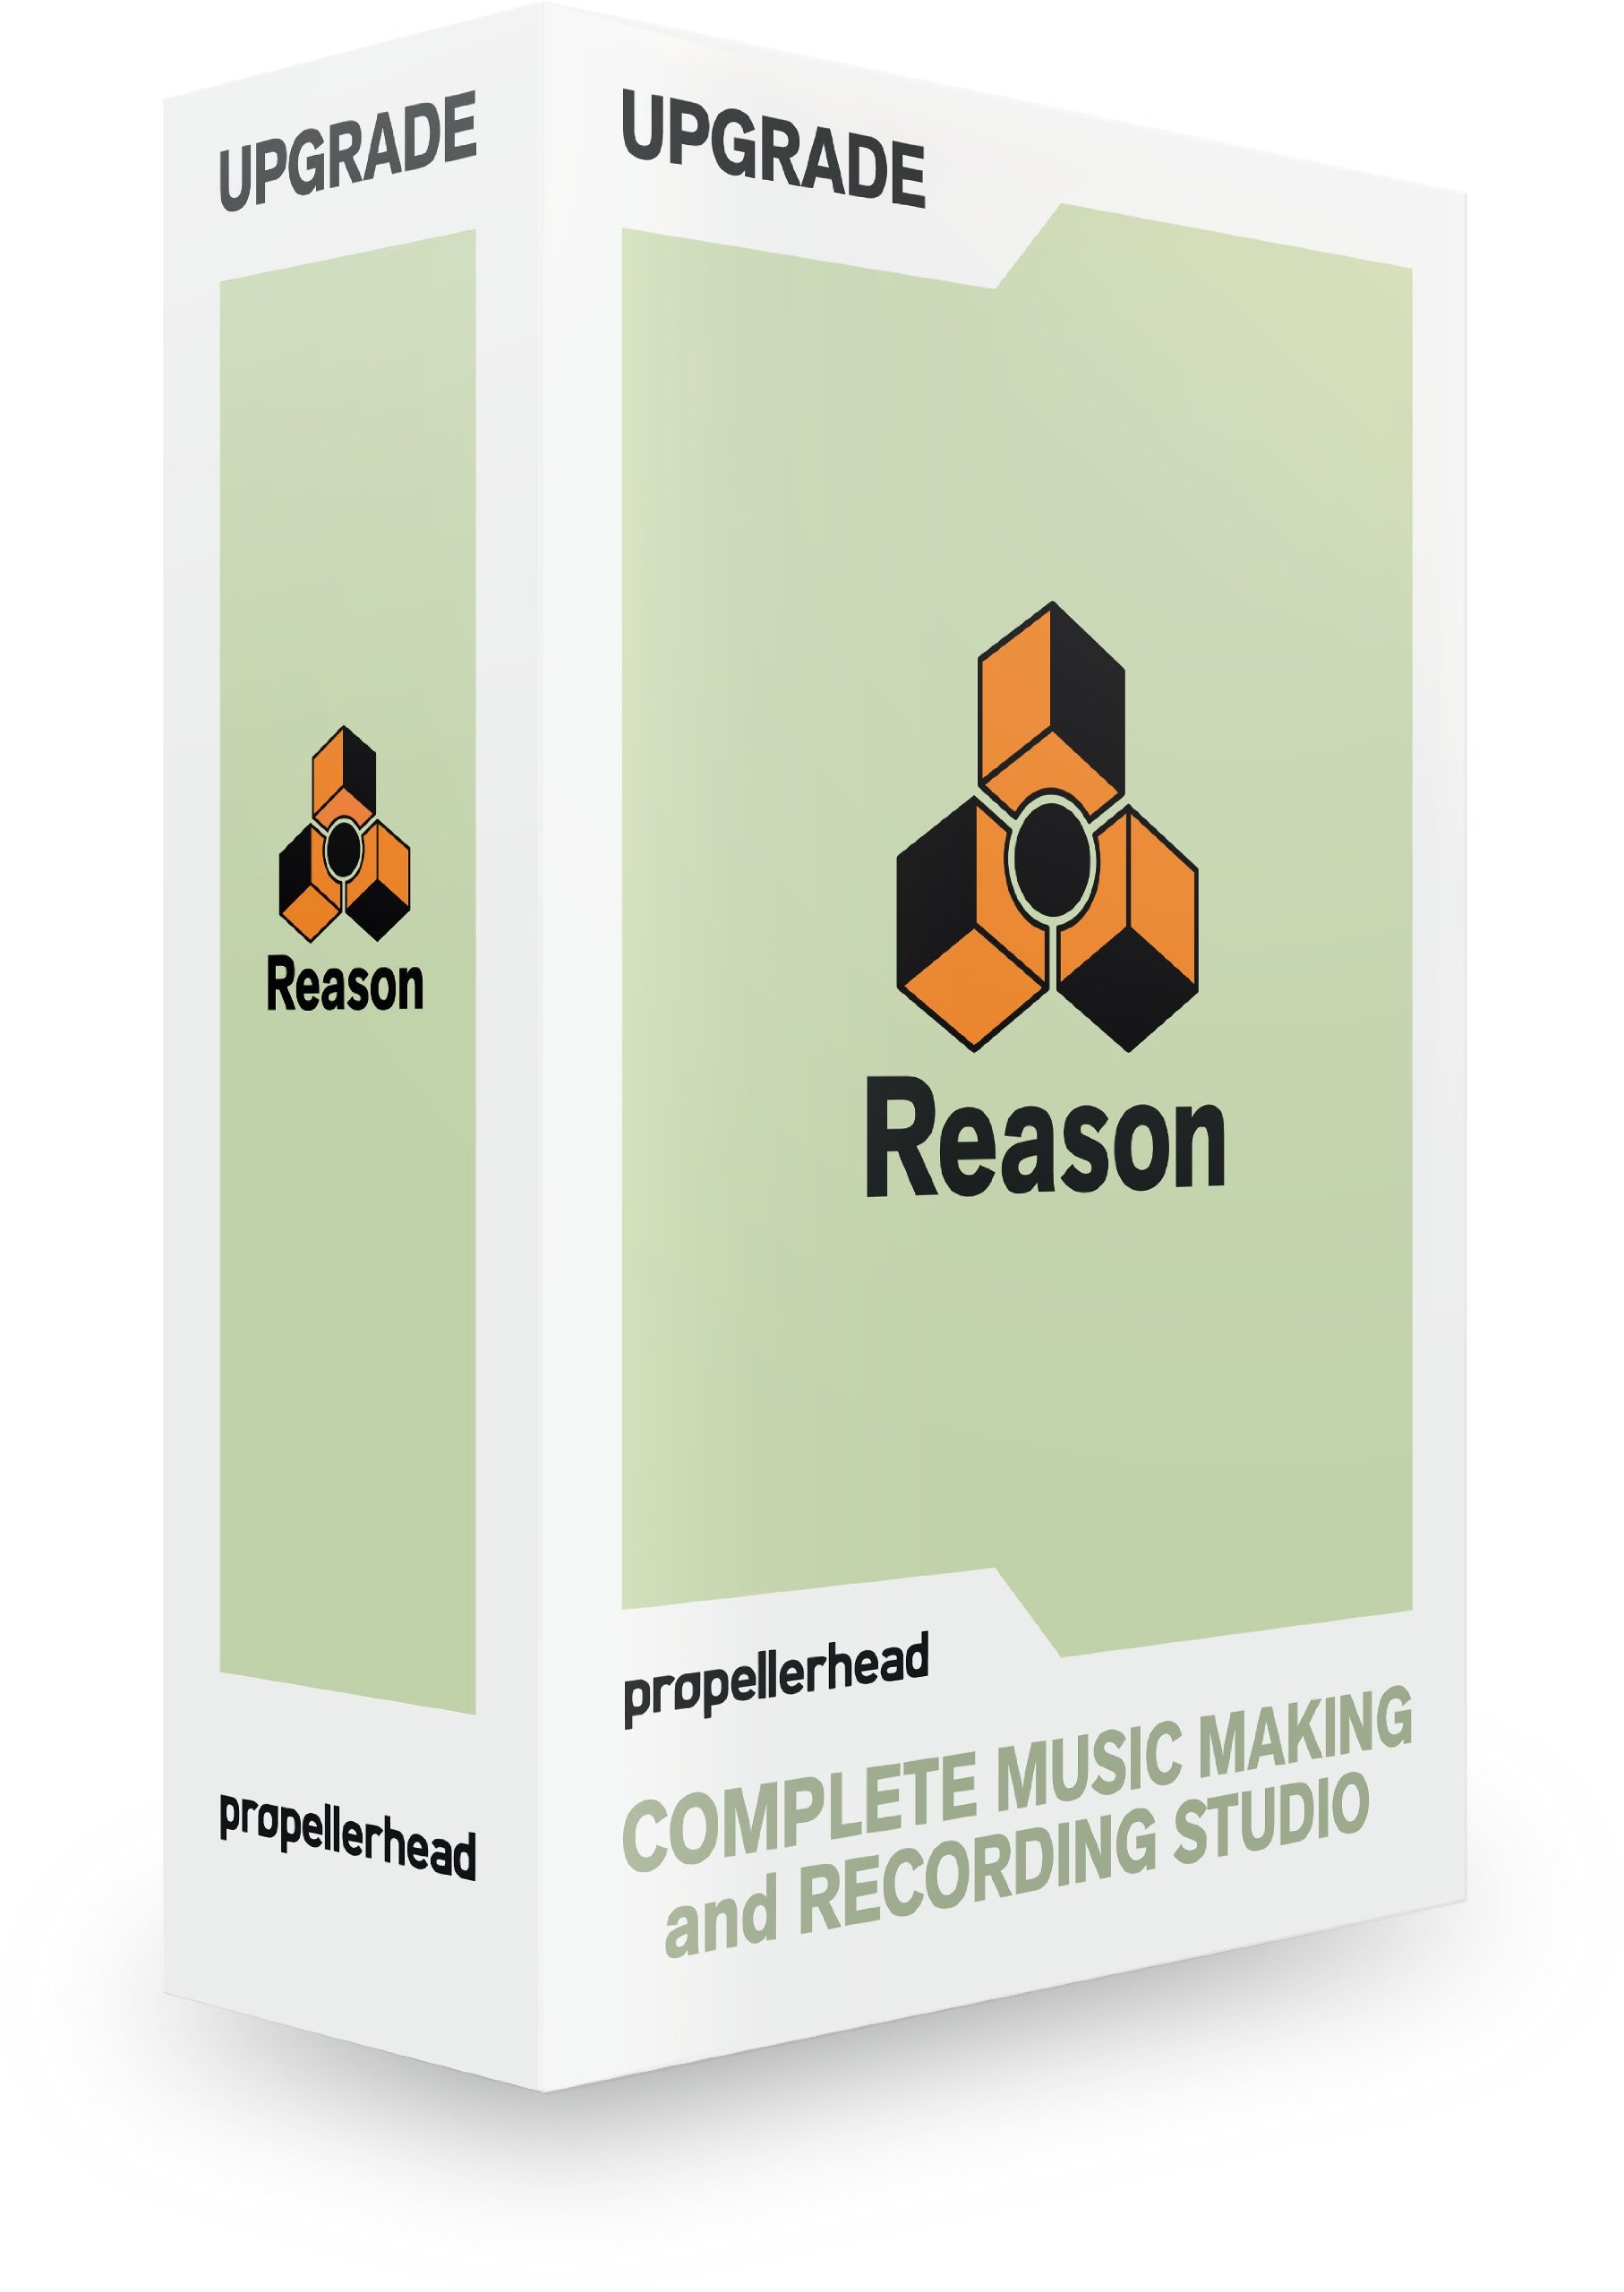 Propellerhead 99-103-0044 Virtual Instrument Software Upgrade for Reason Limited/Adapted by Propellerhead